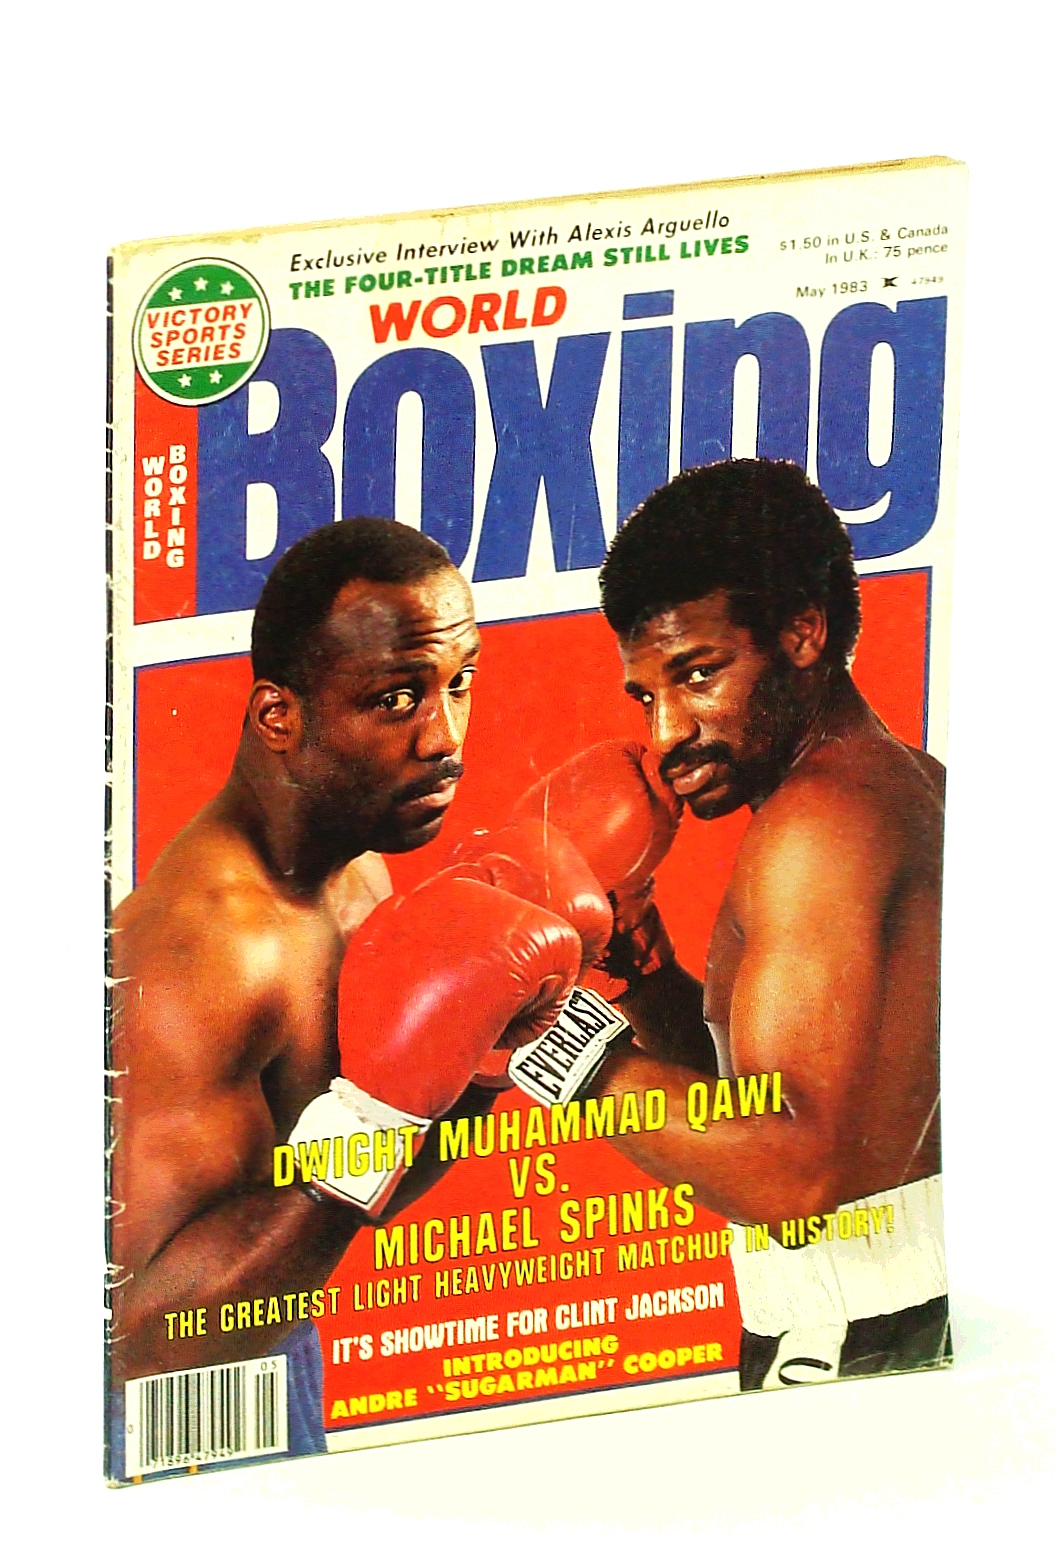 Image for World Boxing [Magazine], May 1983 - Dwight Muhammad Qawi Vs. Michael Spinks Cover Photo